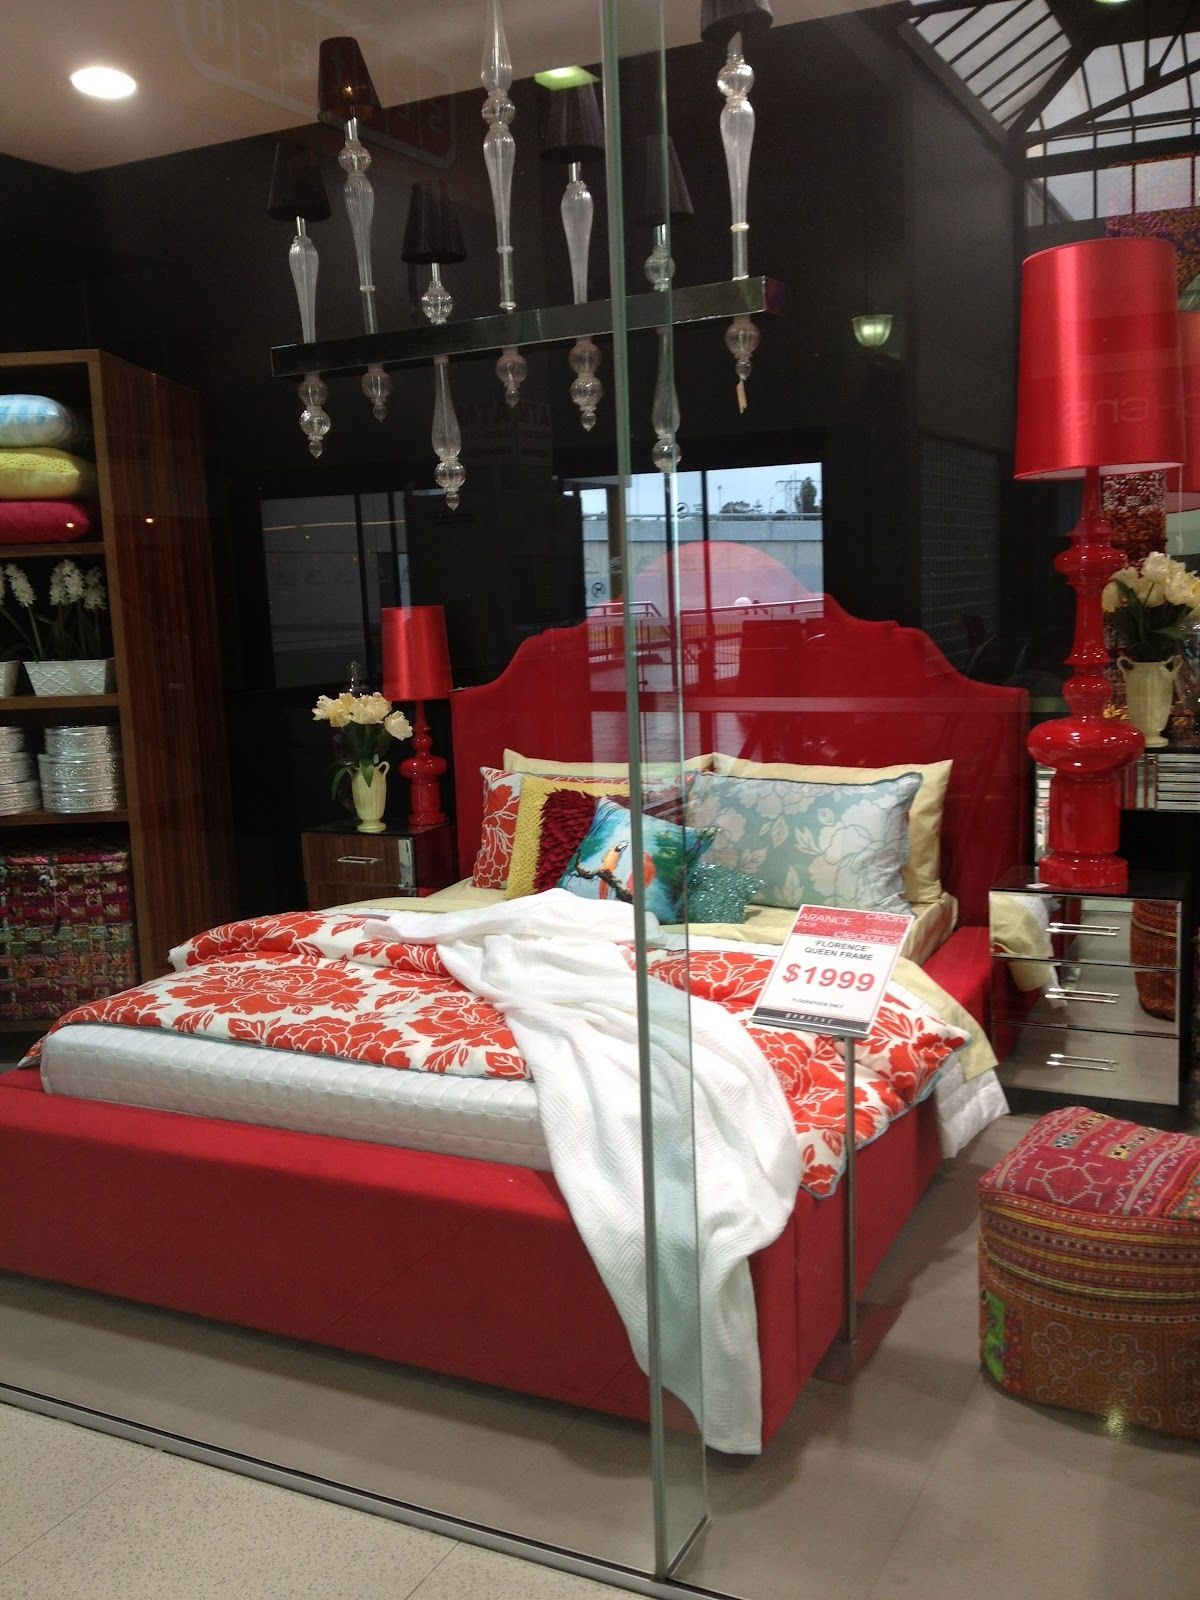 Loving this red bed from domayne . Very queen of hearts . | Virtual ...